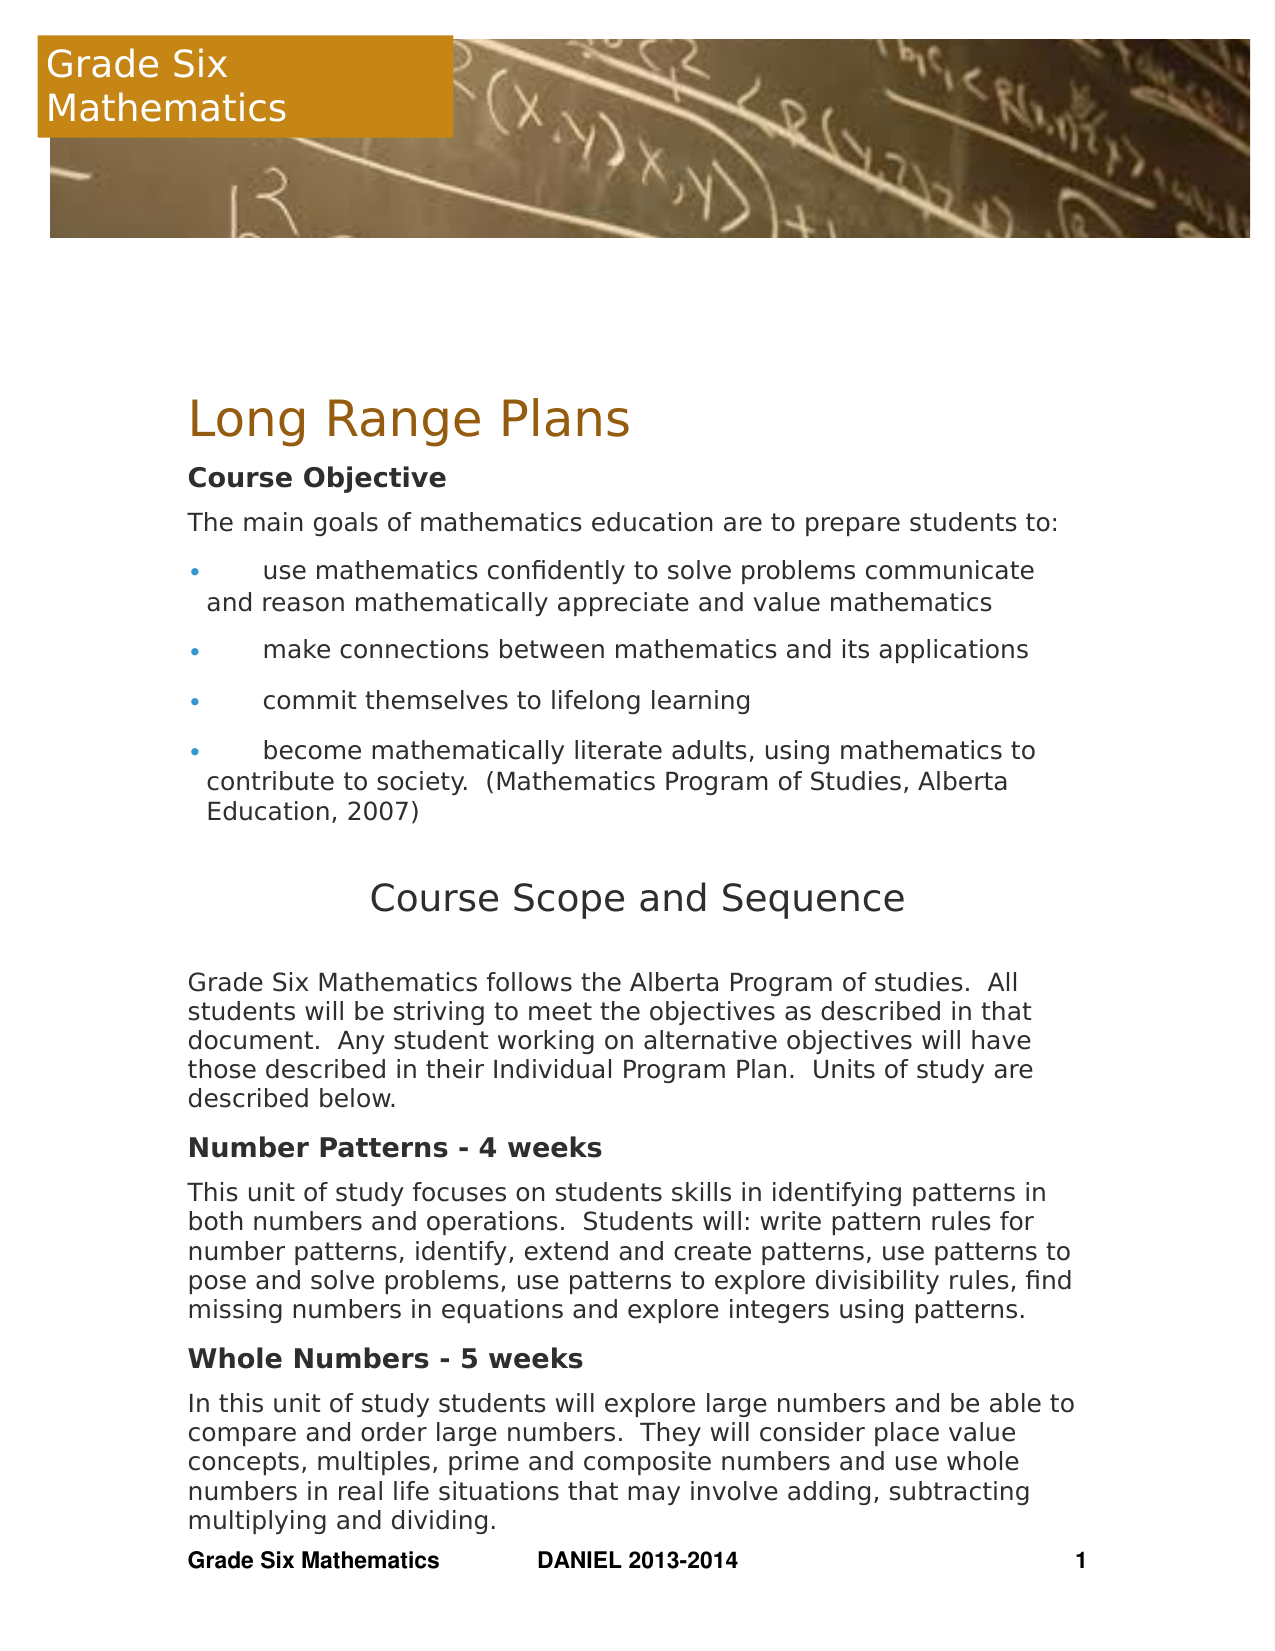 Grade 6 Math Long Range Plans Resource Preview